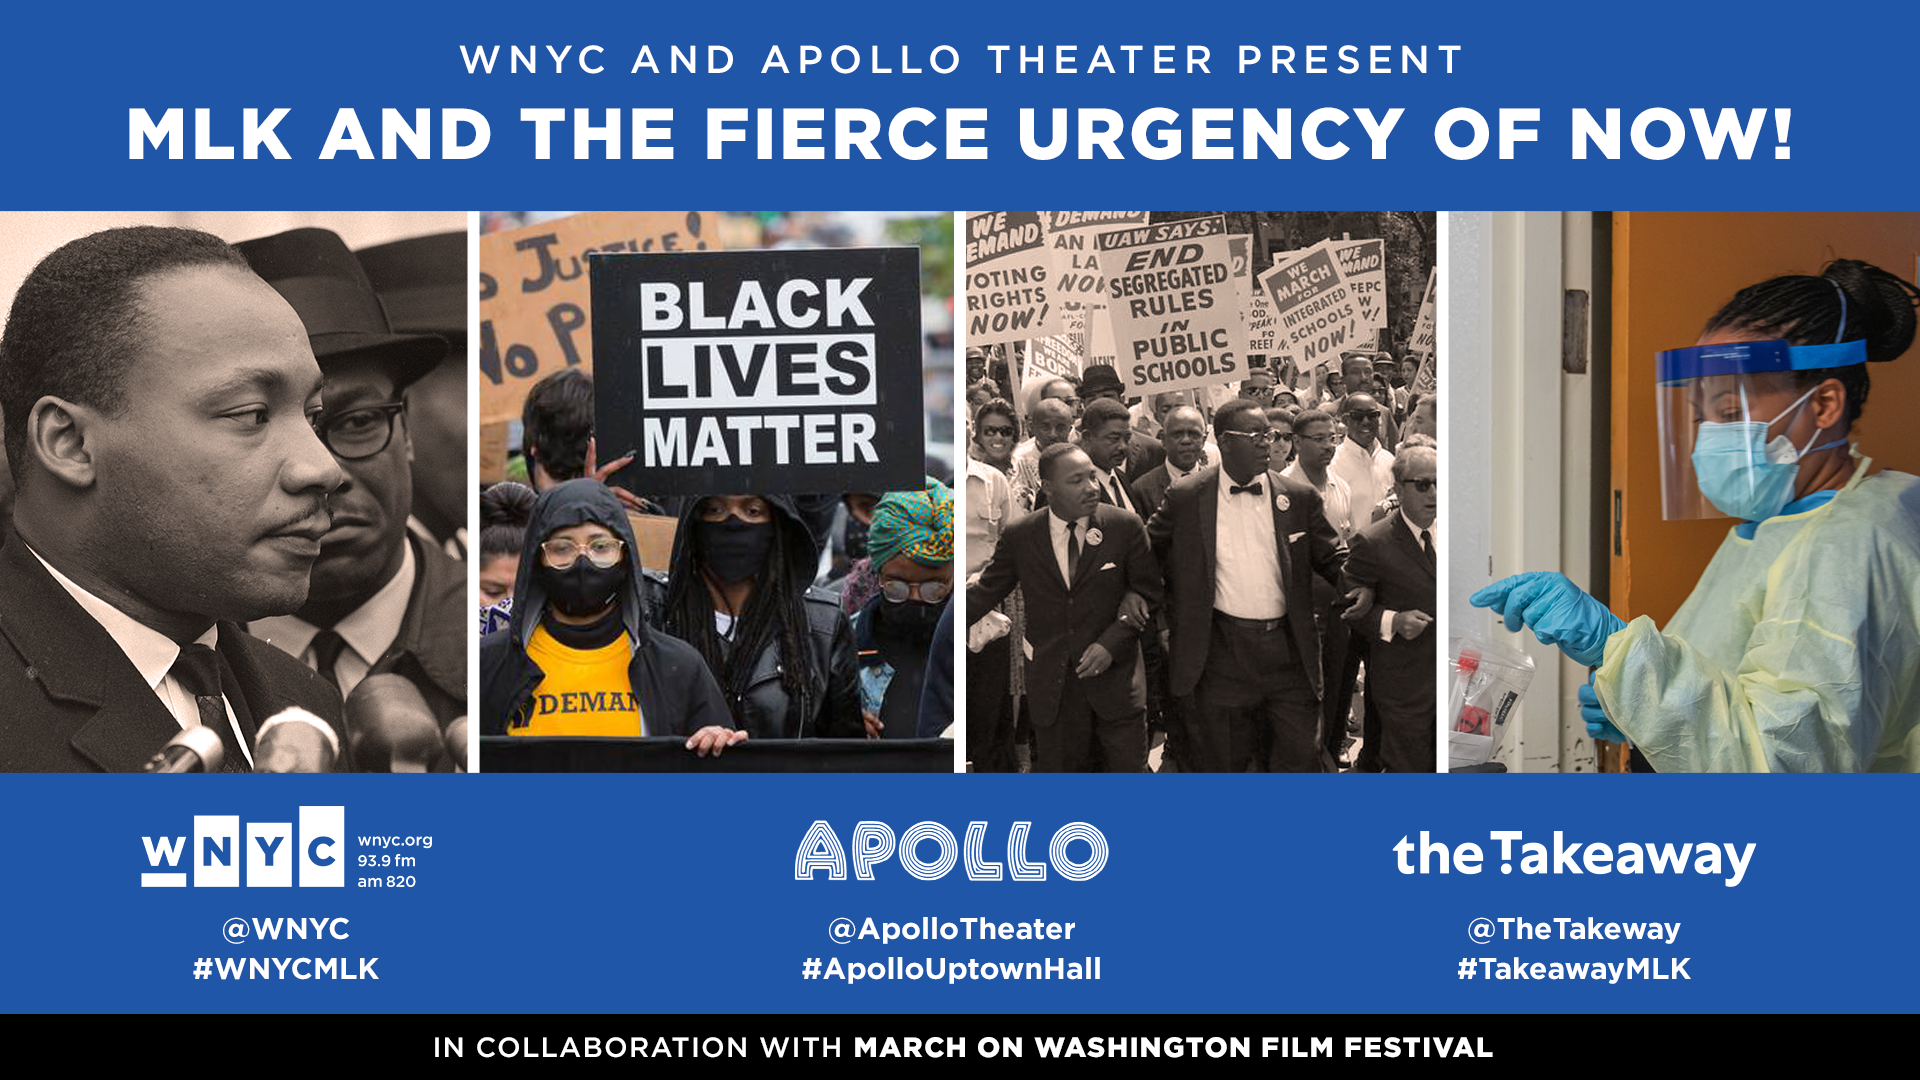 WNYC and Apollo Theater Present: MLK and the Fierce Urgency of Now!